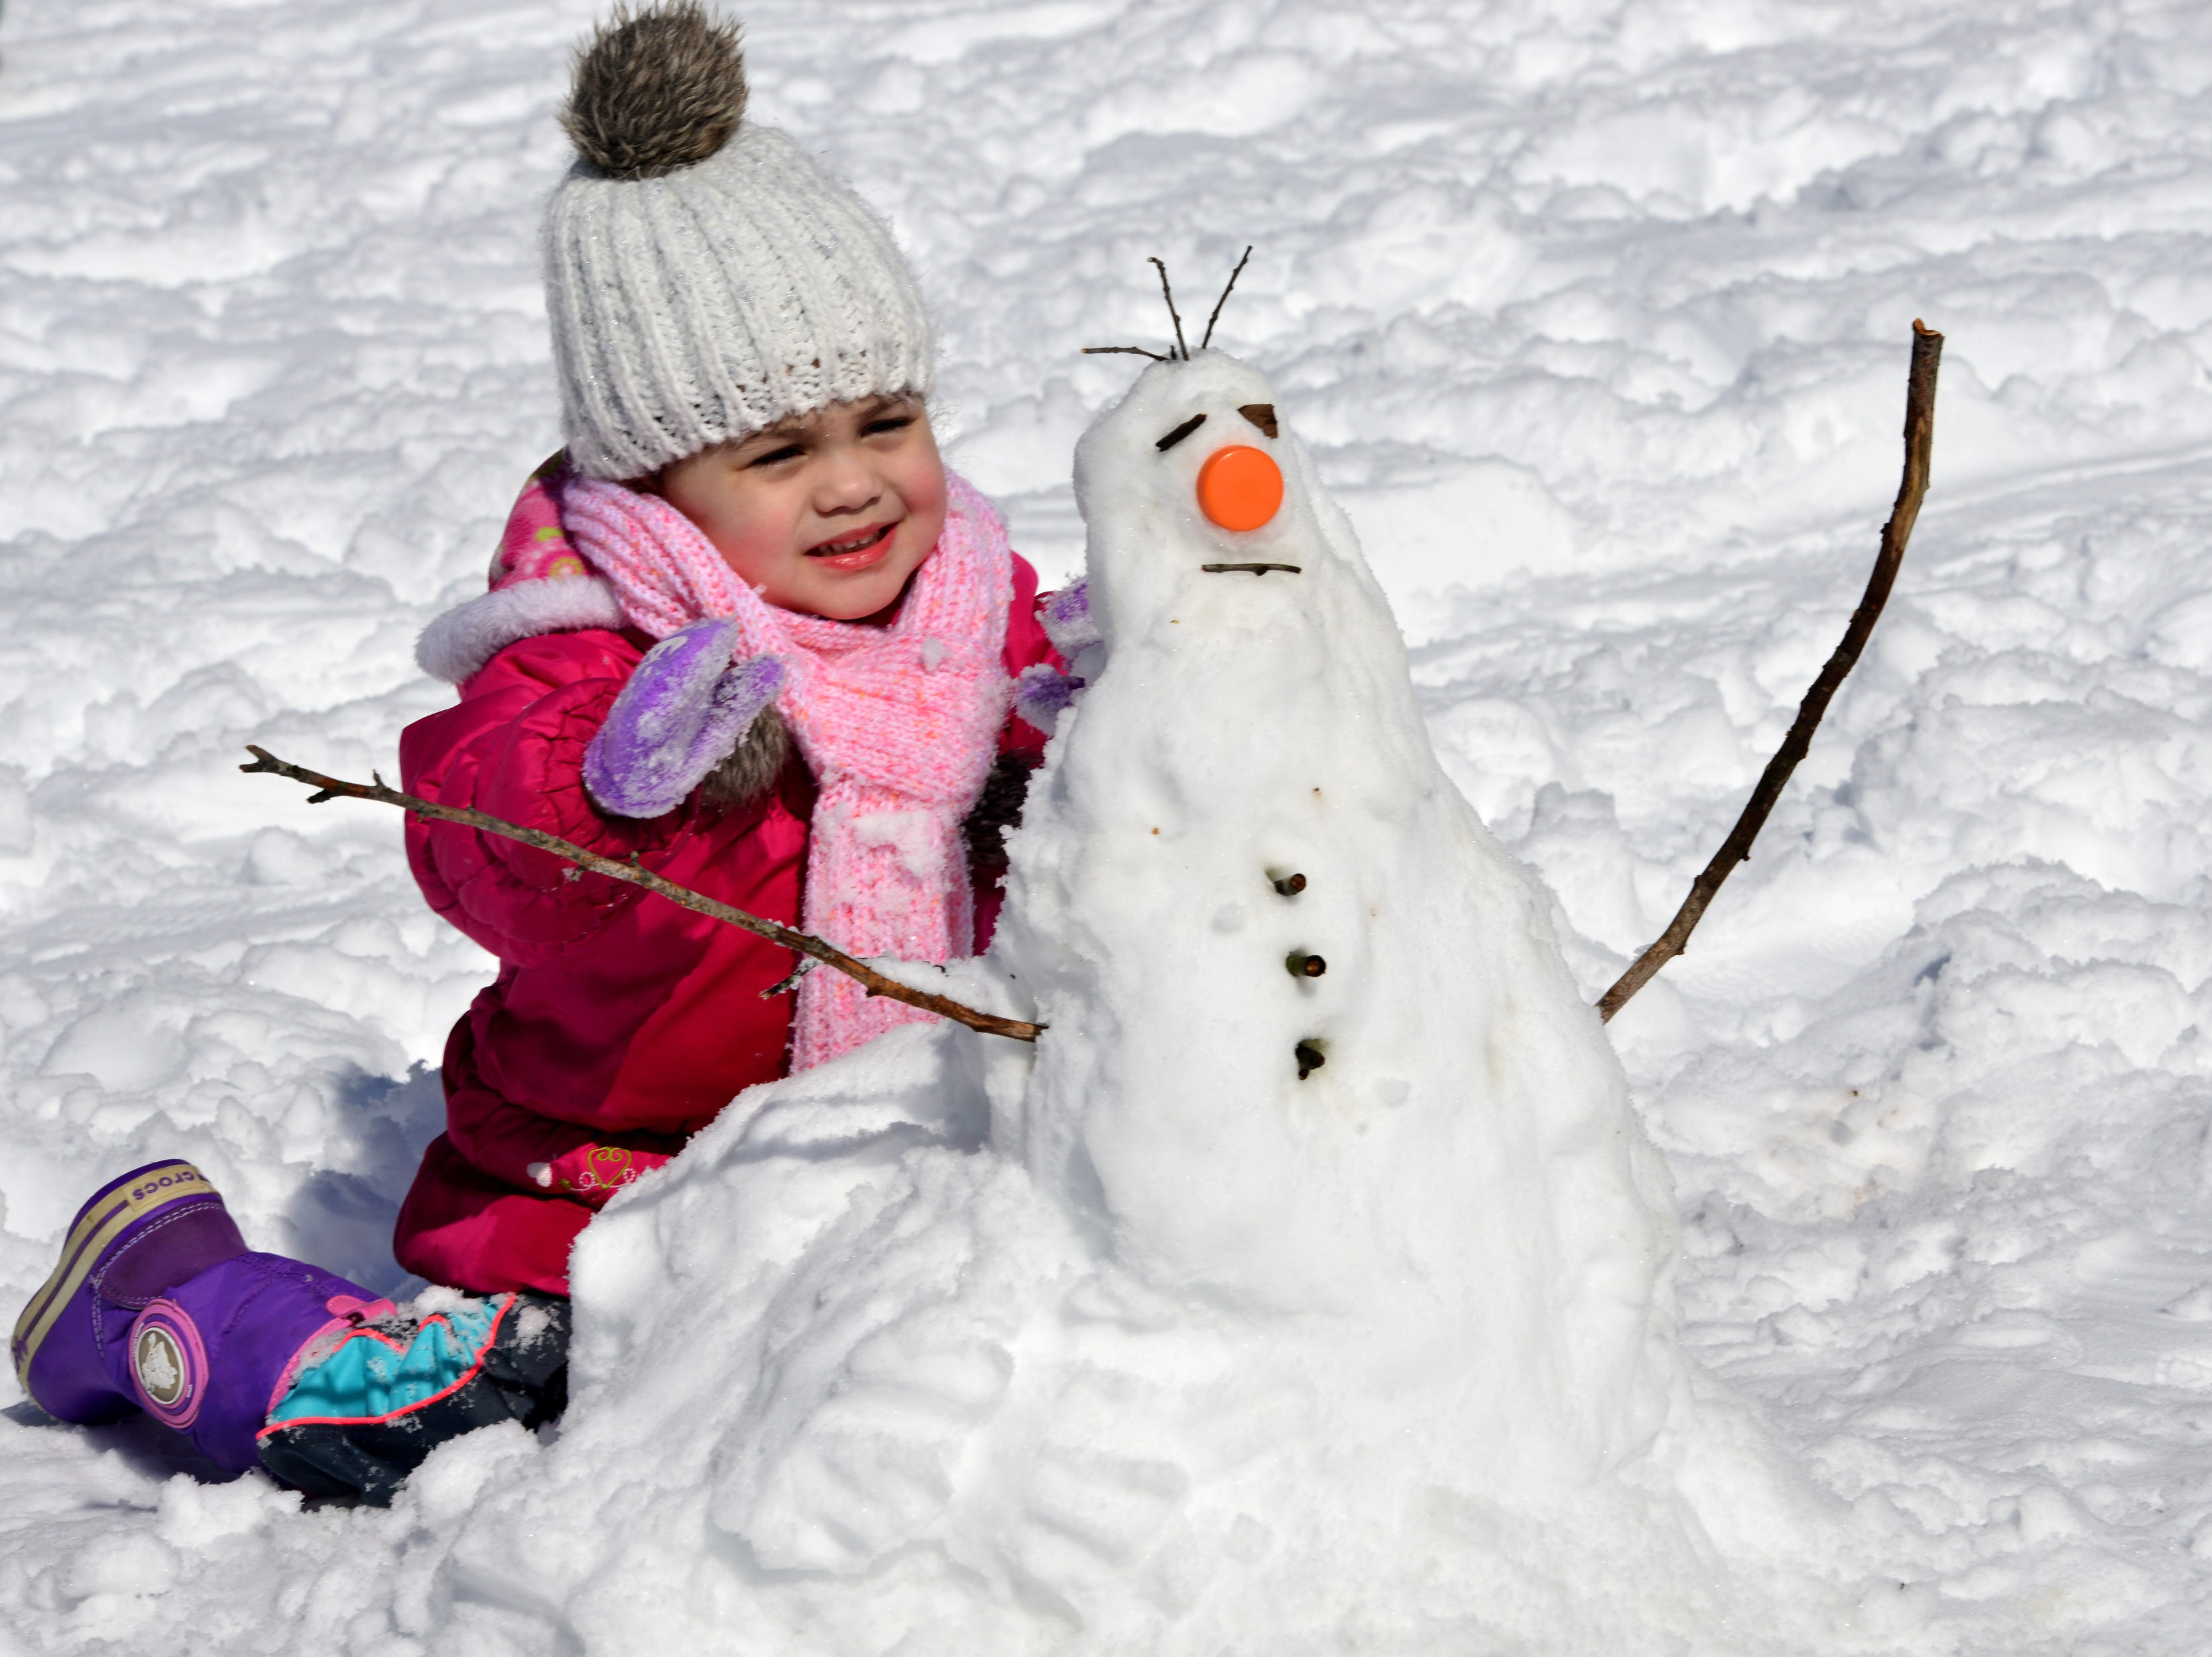 Eliana Luna, 2, of Englewood, makes a snowman she calls Olaf at Van Saun Park in Paramus on Monday March 4, 2019.